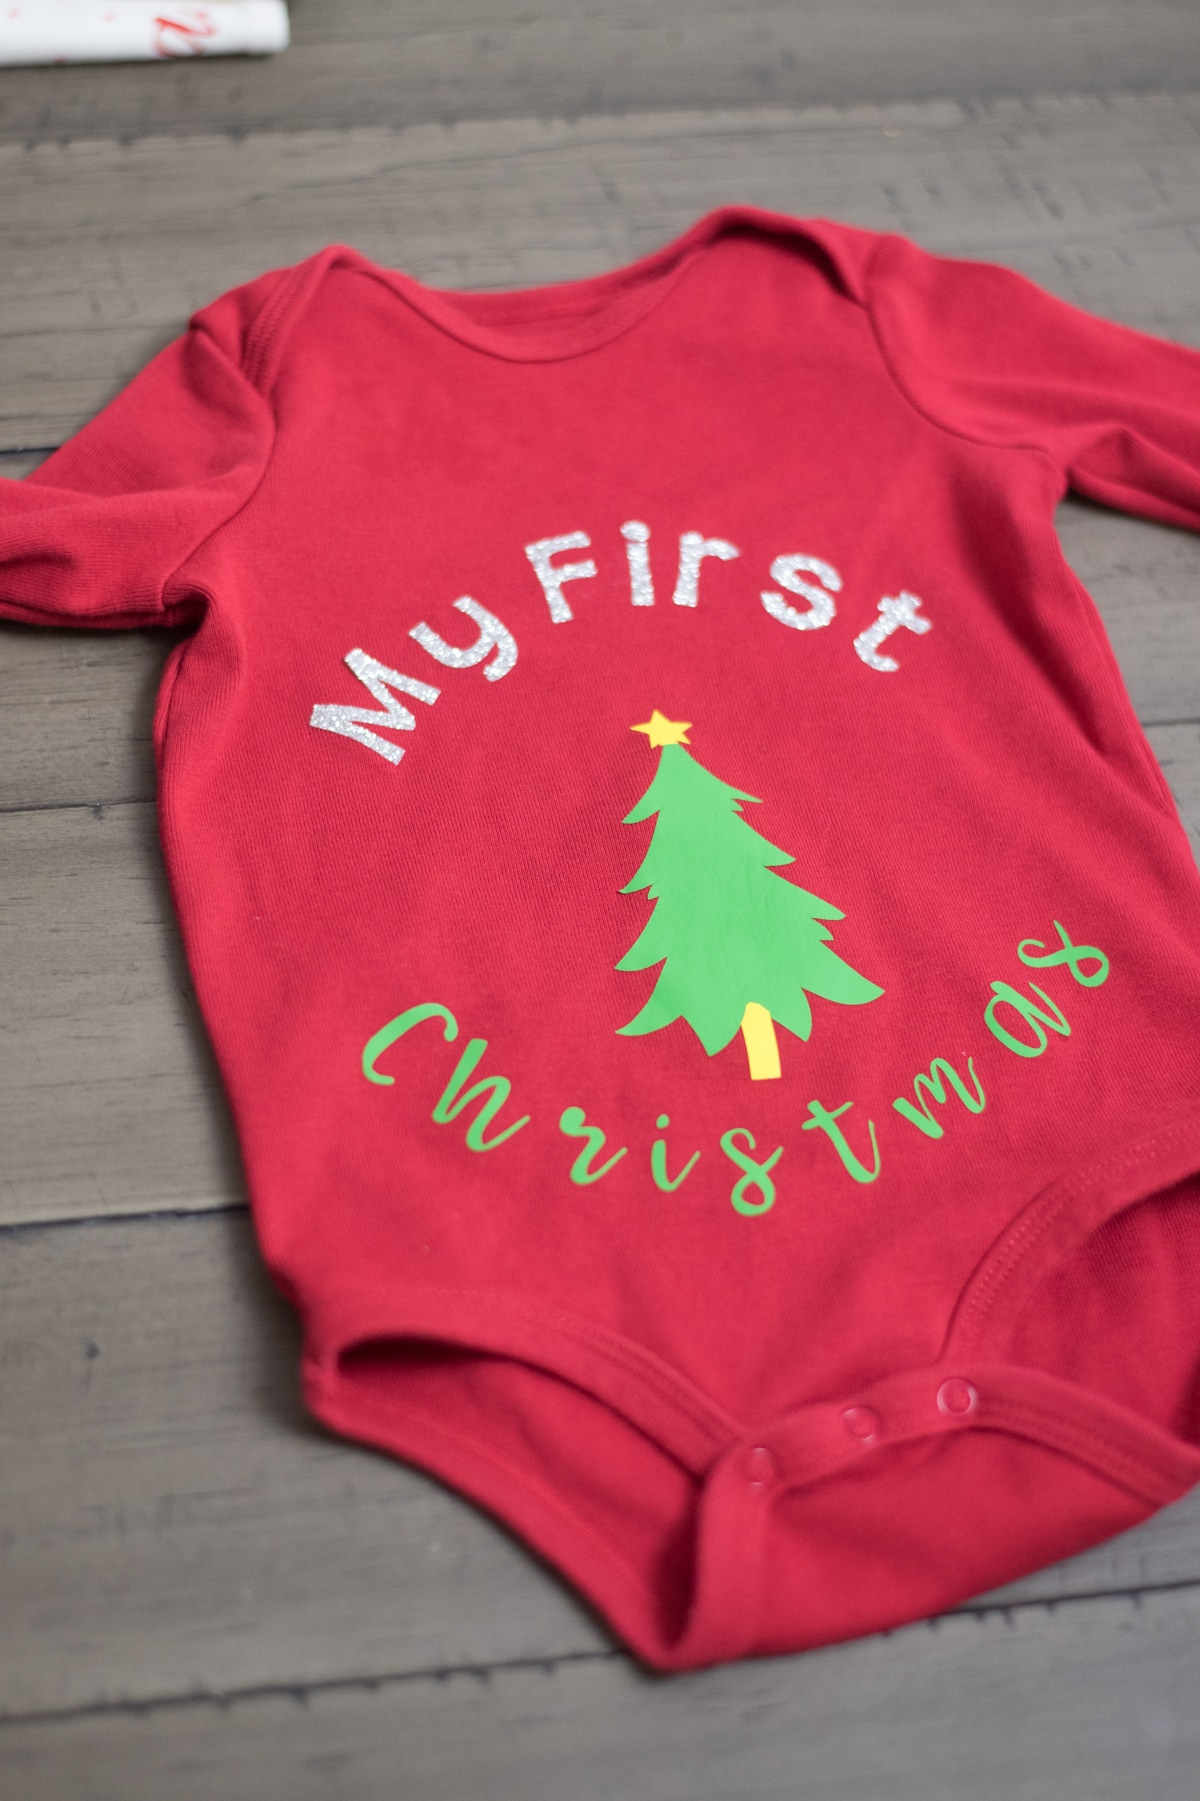 My First Christmas Red Colored Baby Cloth